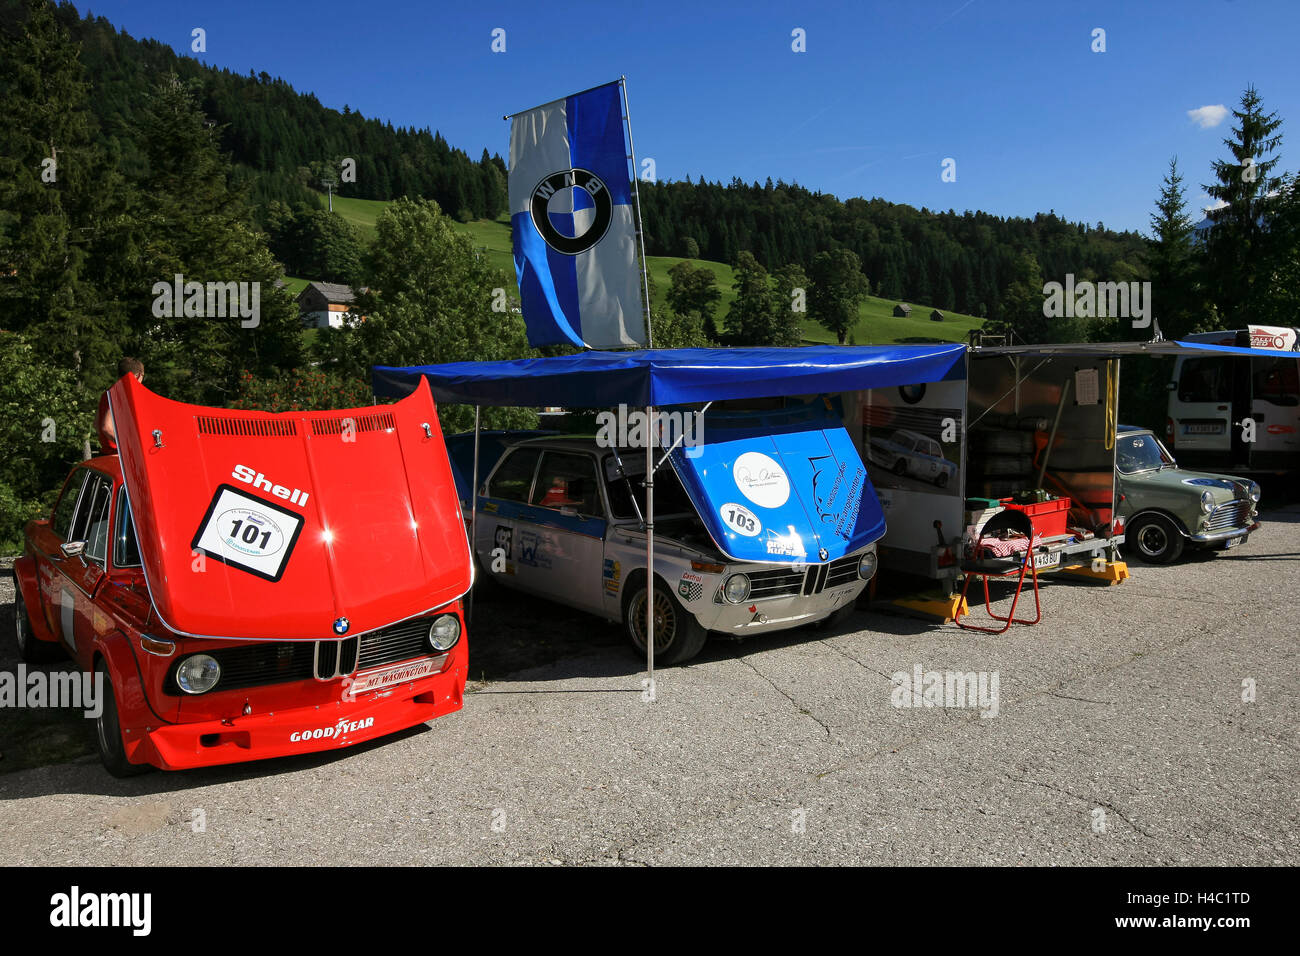 Pits at the mountain race at the Loser, Styria, Austria - Stock Image